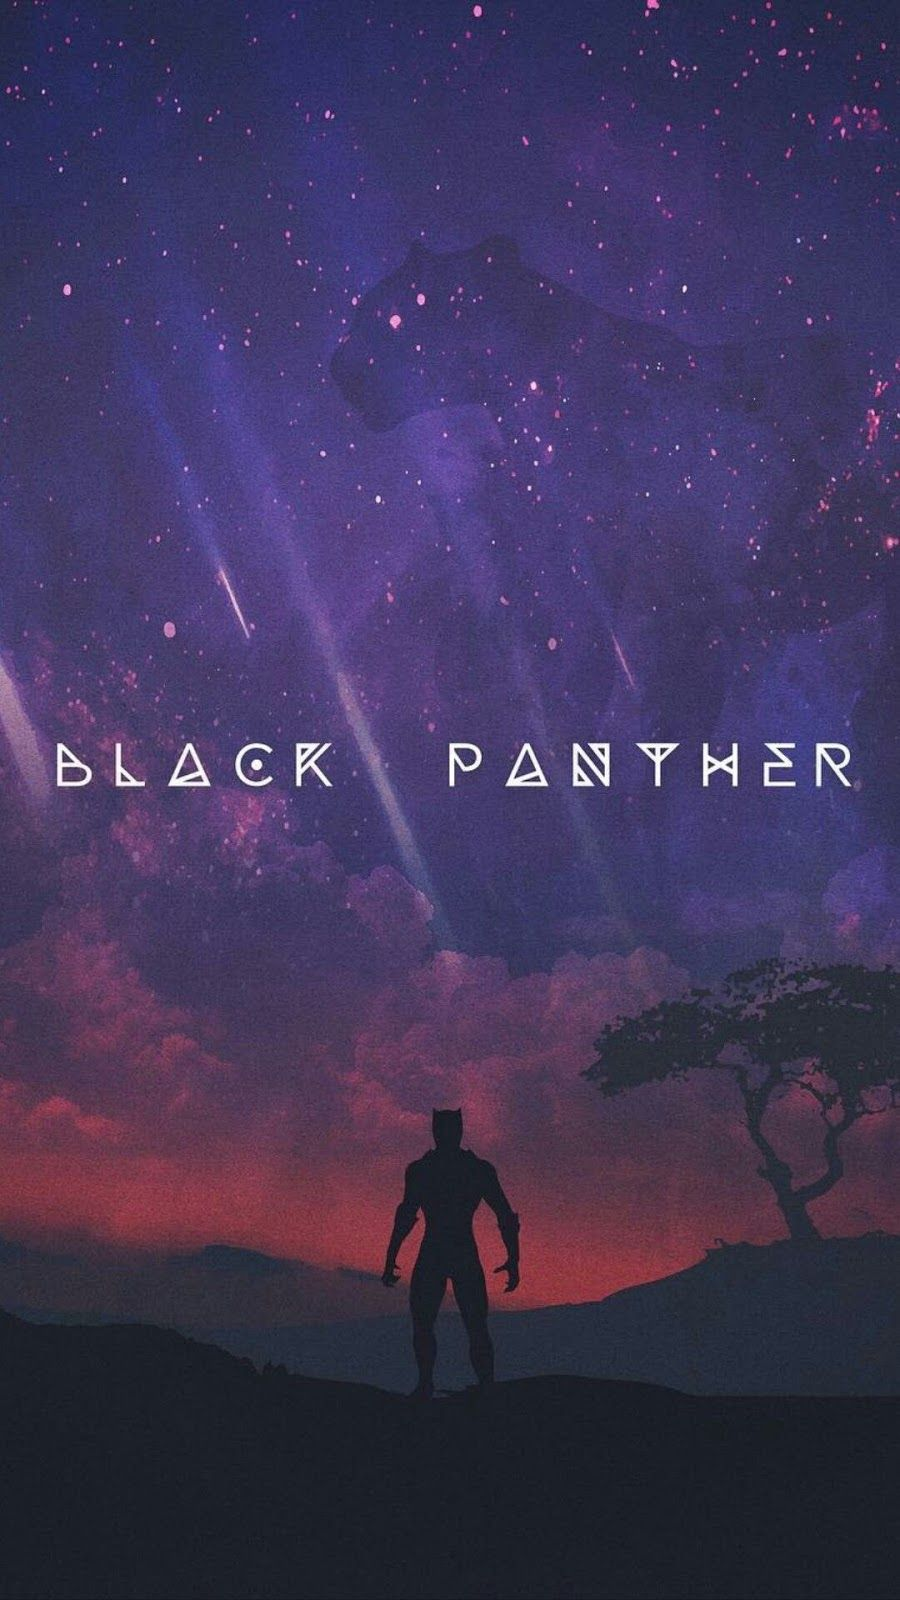 900x1600 Black Panther Wallpapers From Avengers In HD 4K - Whats Images